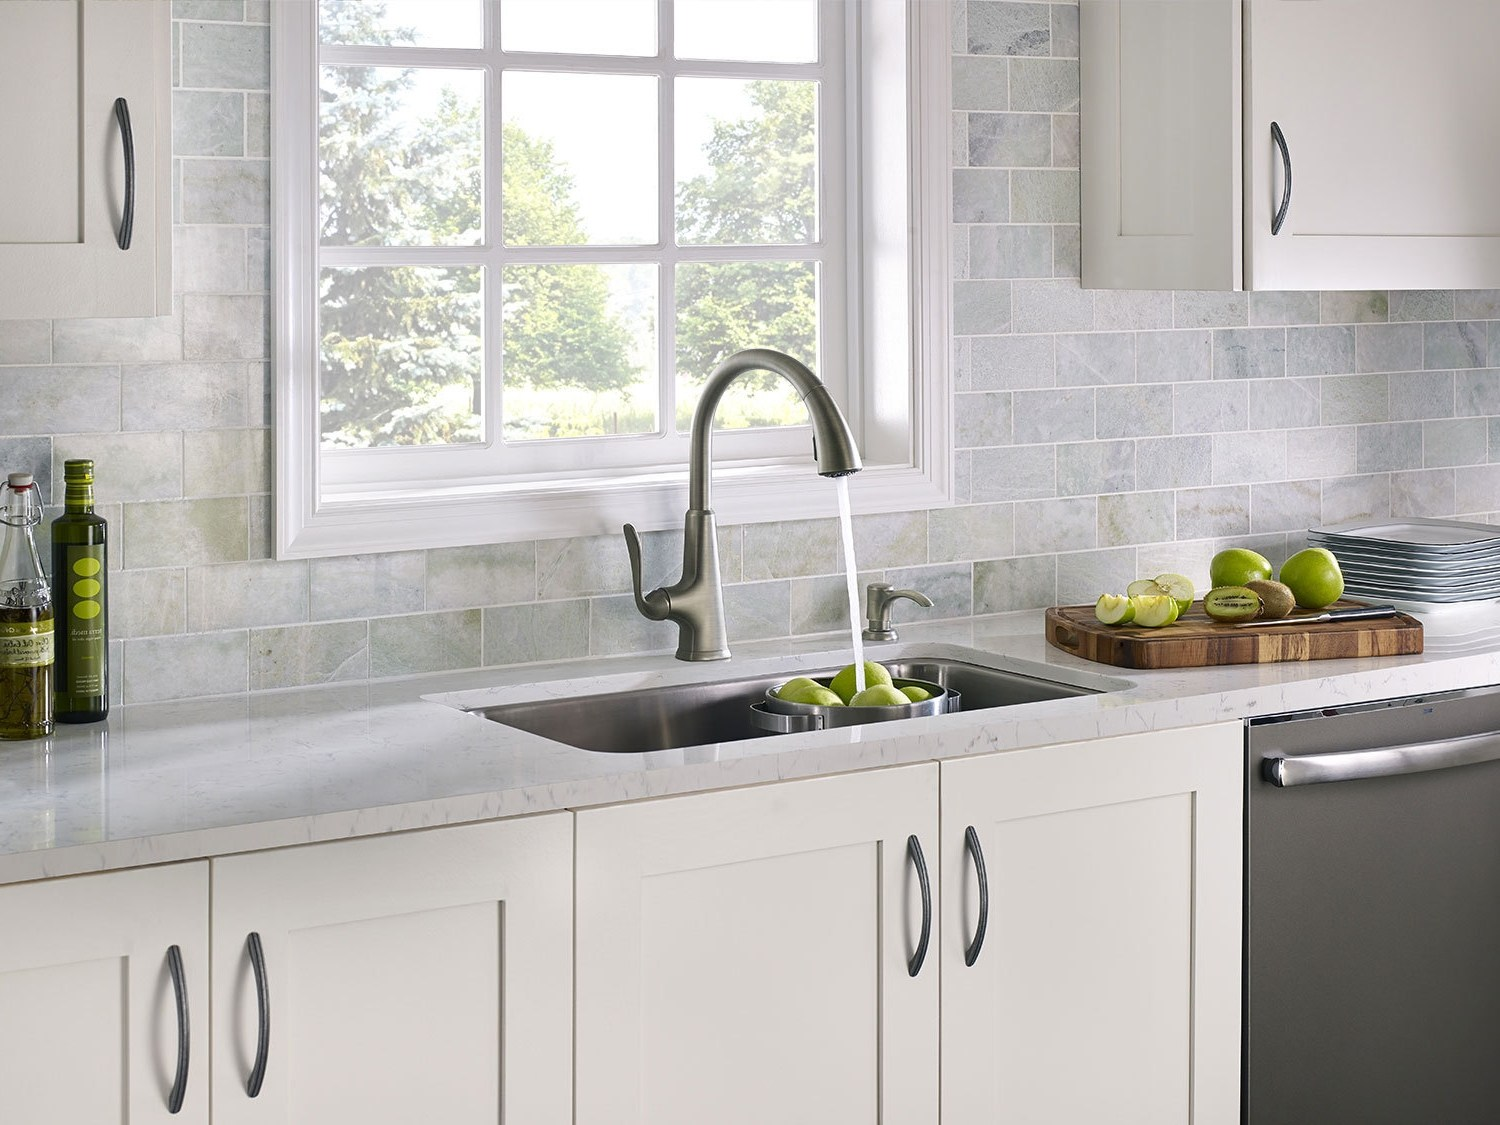 Get Sleek and Sophisticated New Kitchen Countertops for Less